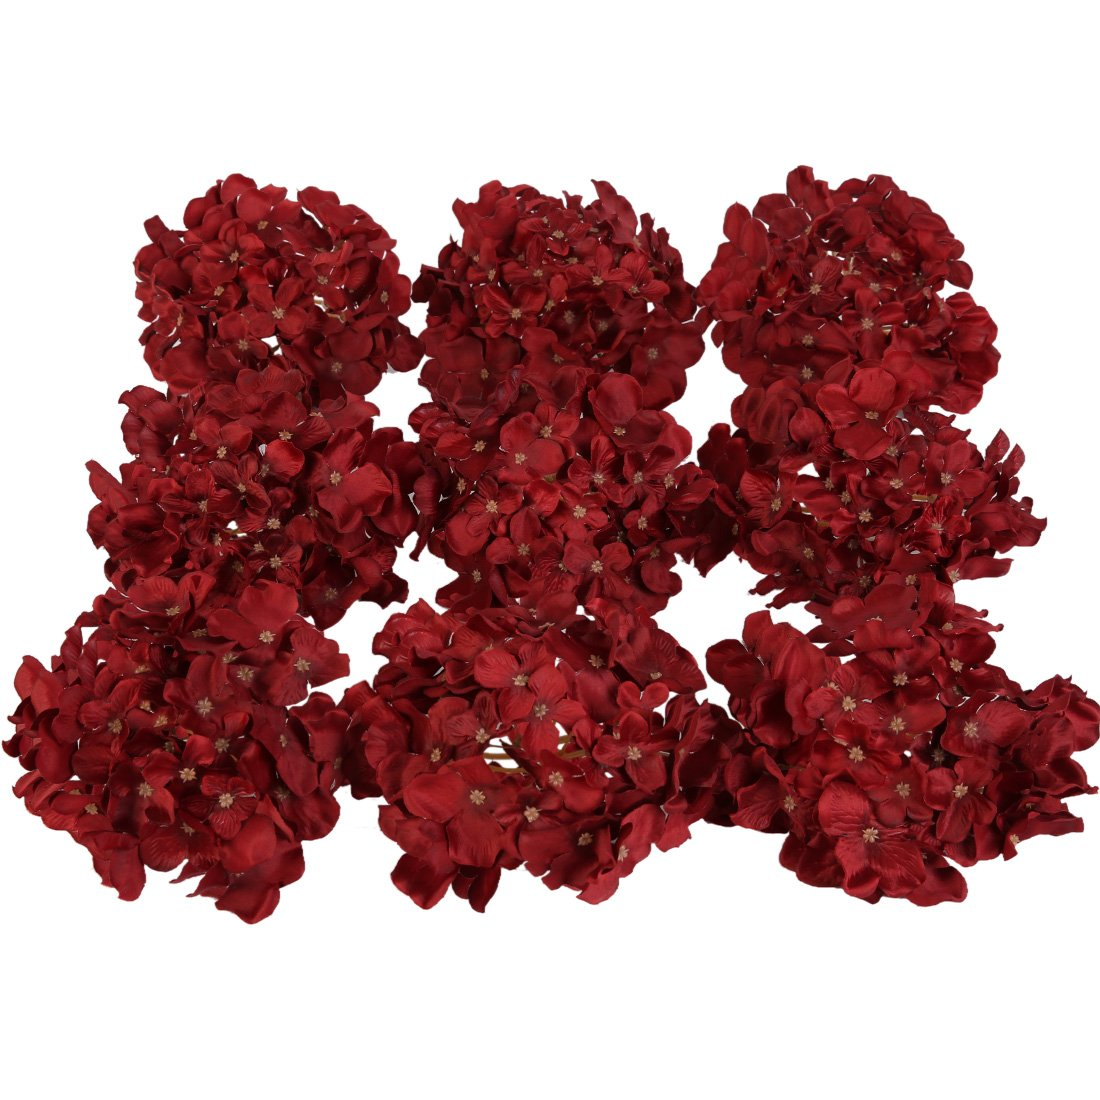 Luyue-Silk-Hydrangea-Heads-Artificial-Decoration-Flowers-Garden-Floral-DecorPack-of-10-Wine-Red